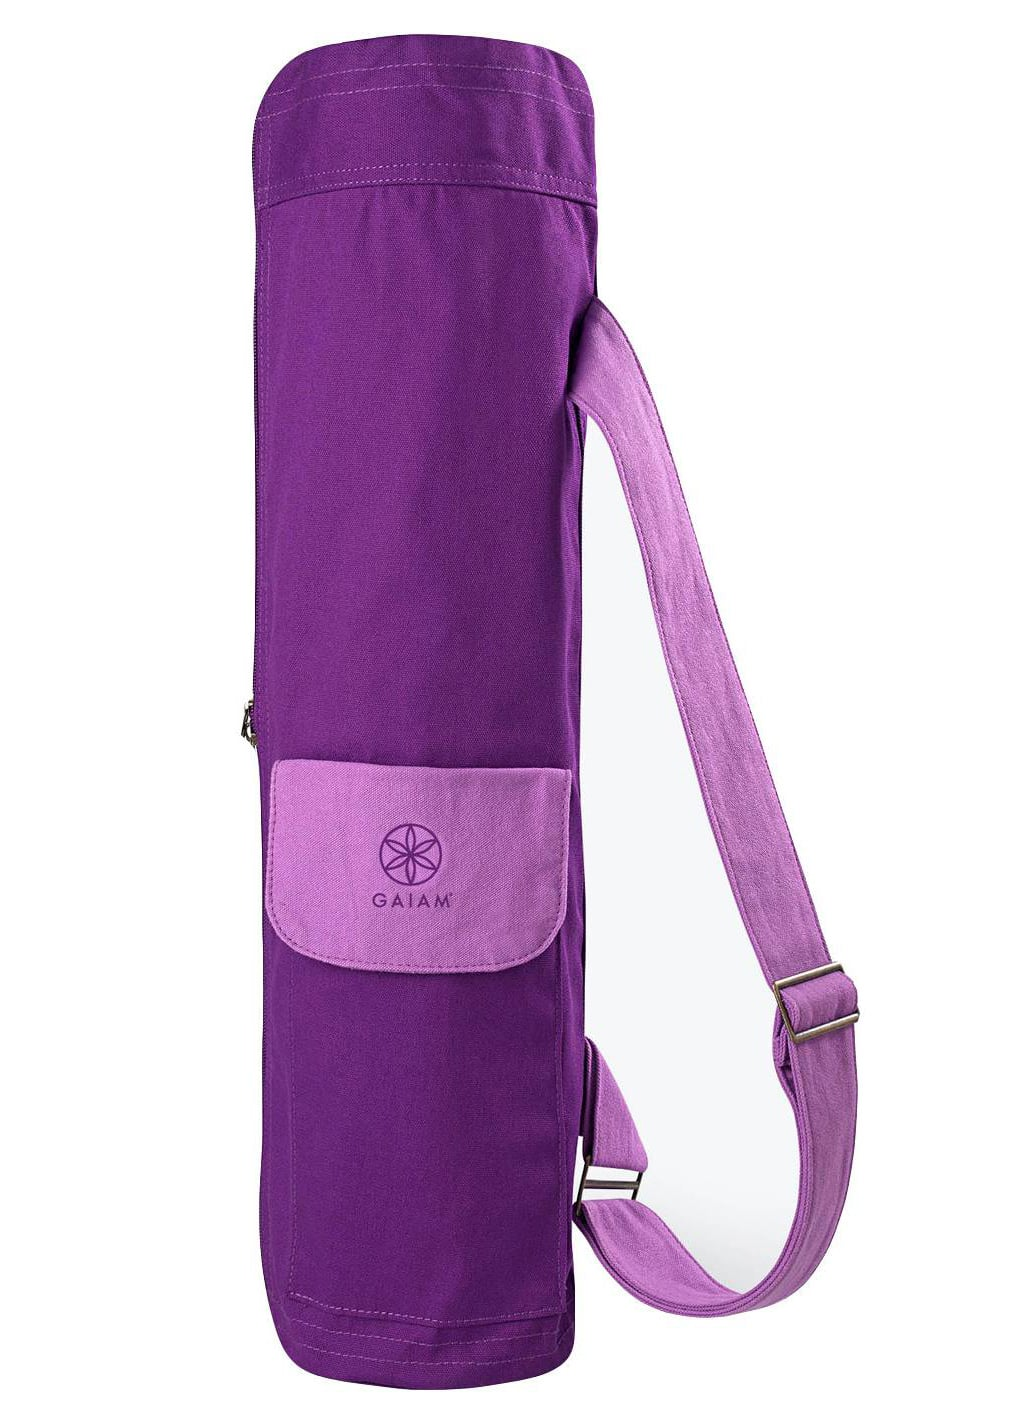 Gaiam 2 Color Cargo Yoga Mat Bag 25 Fitness Items Under 25 From Target Popsugar Fitness Photo 24